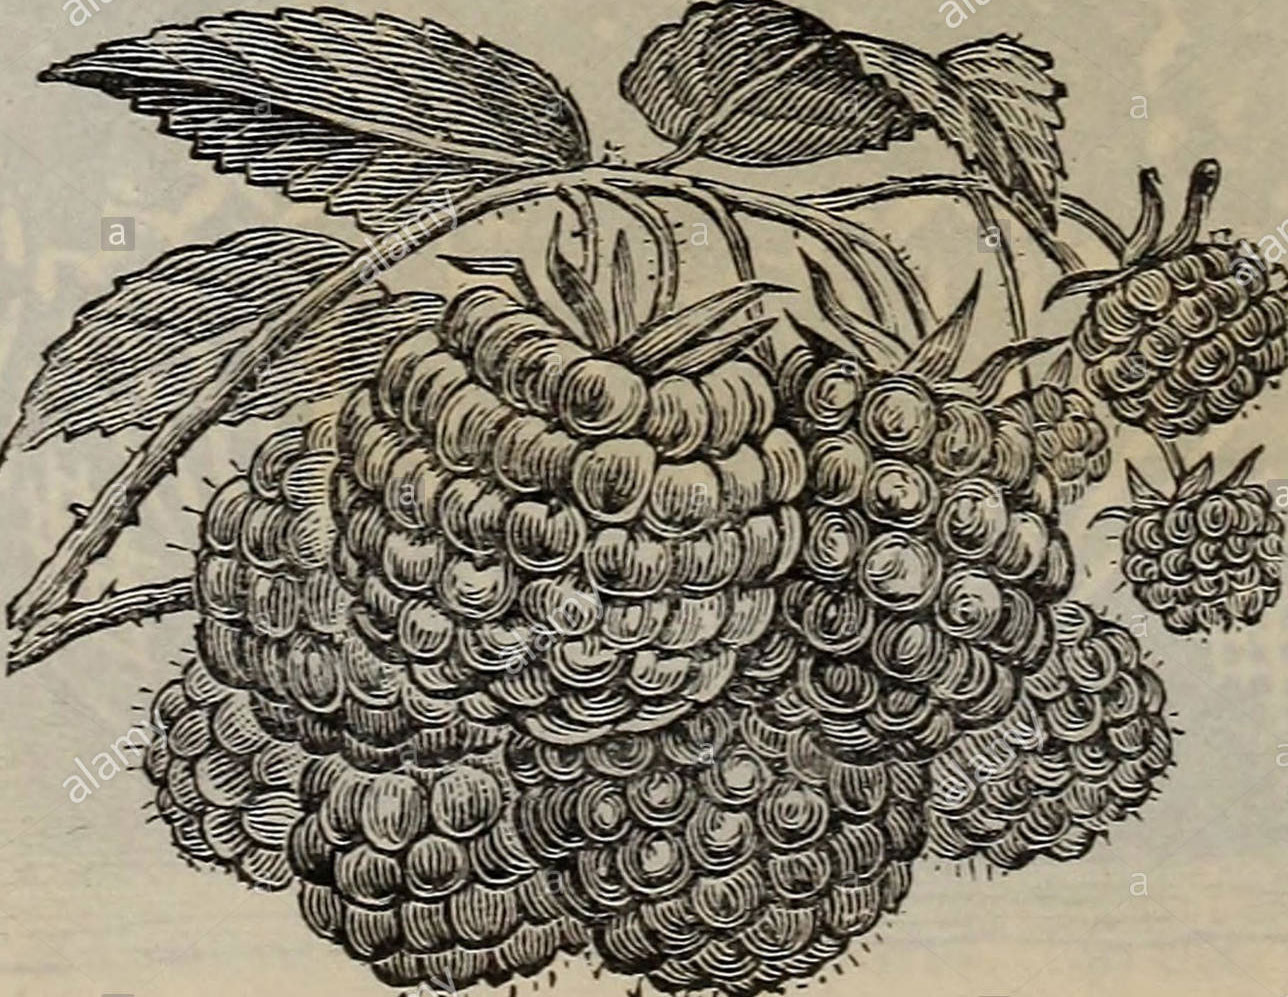 Sketch-of-Wineberry